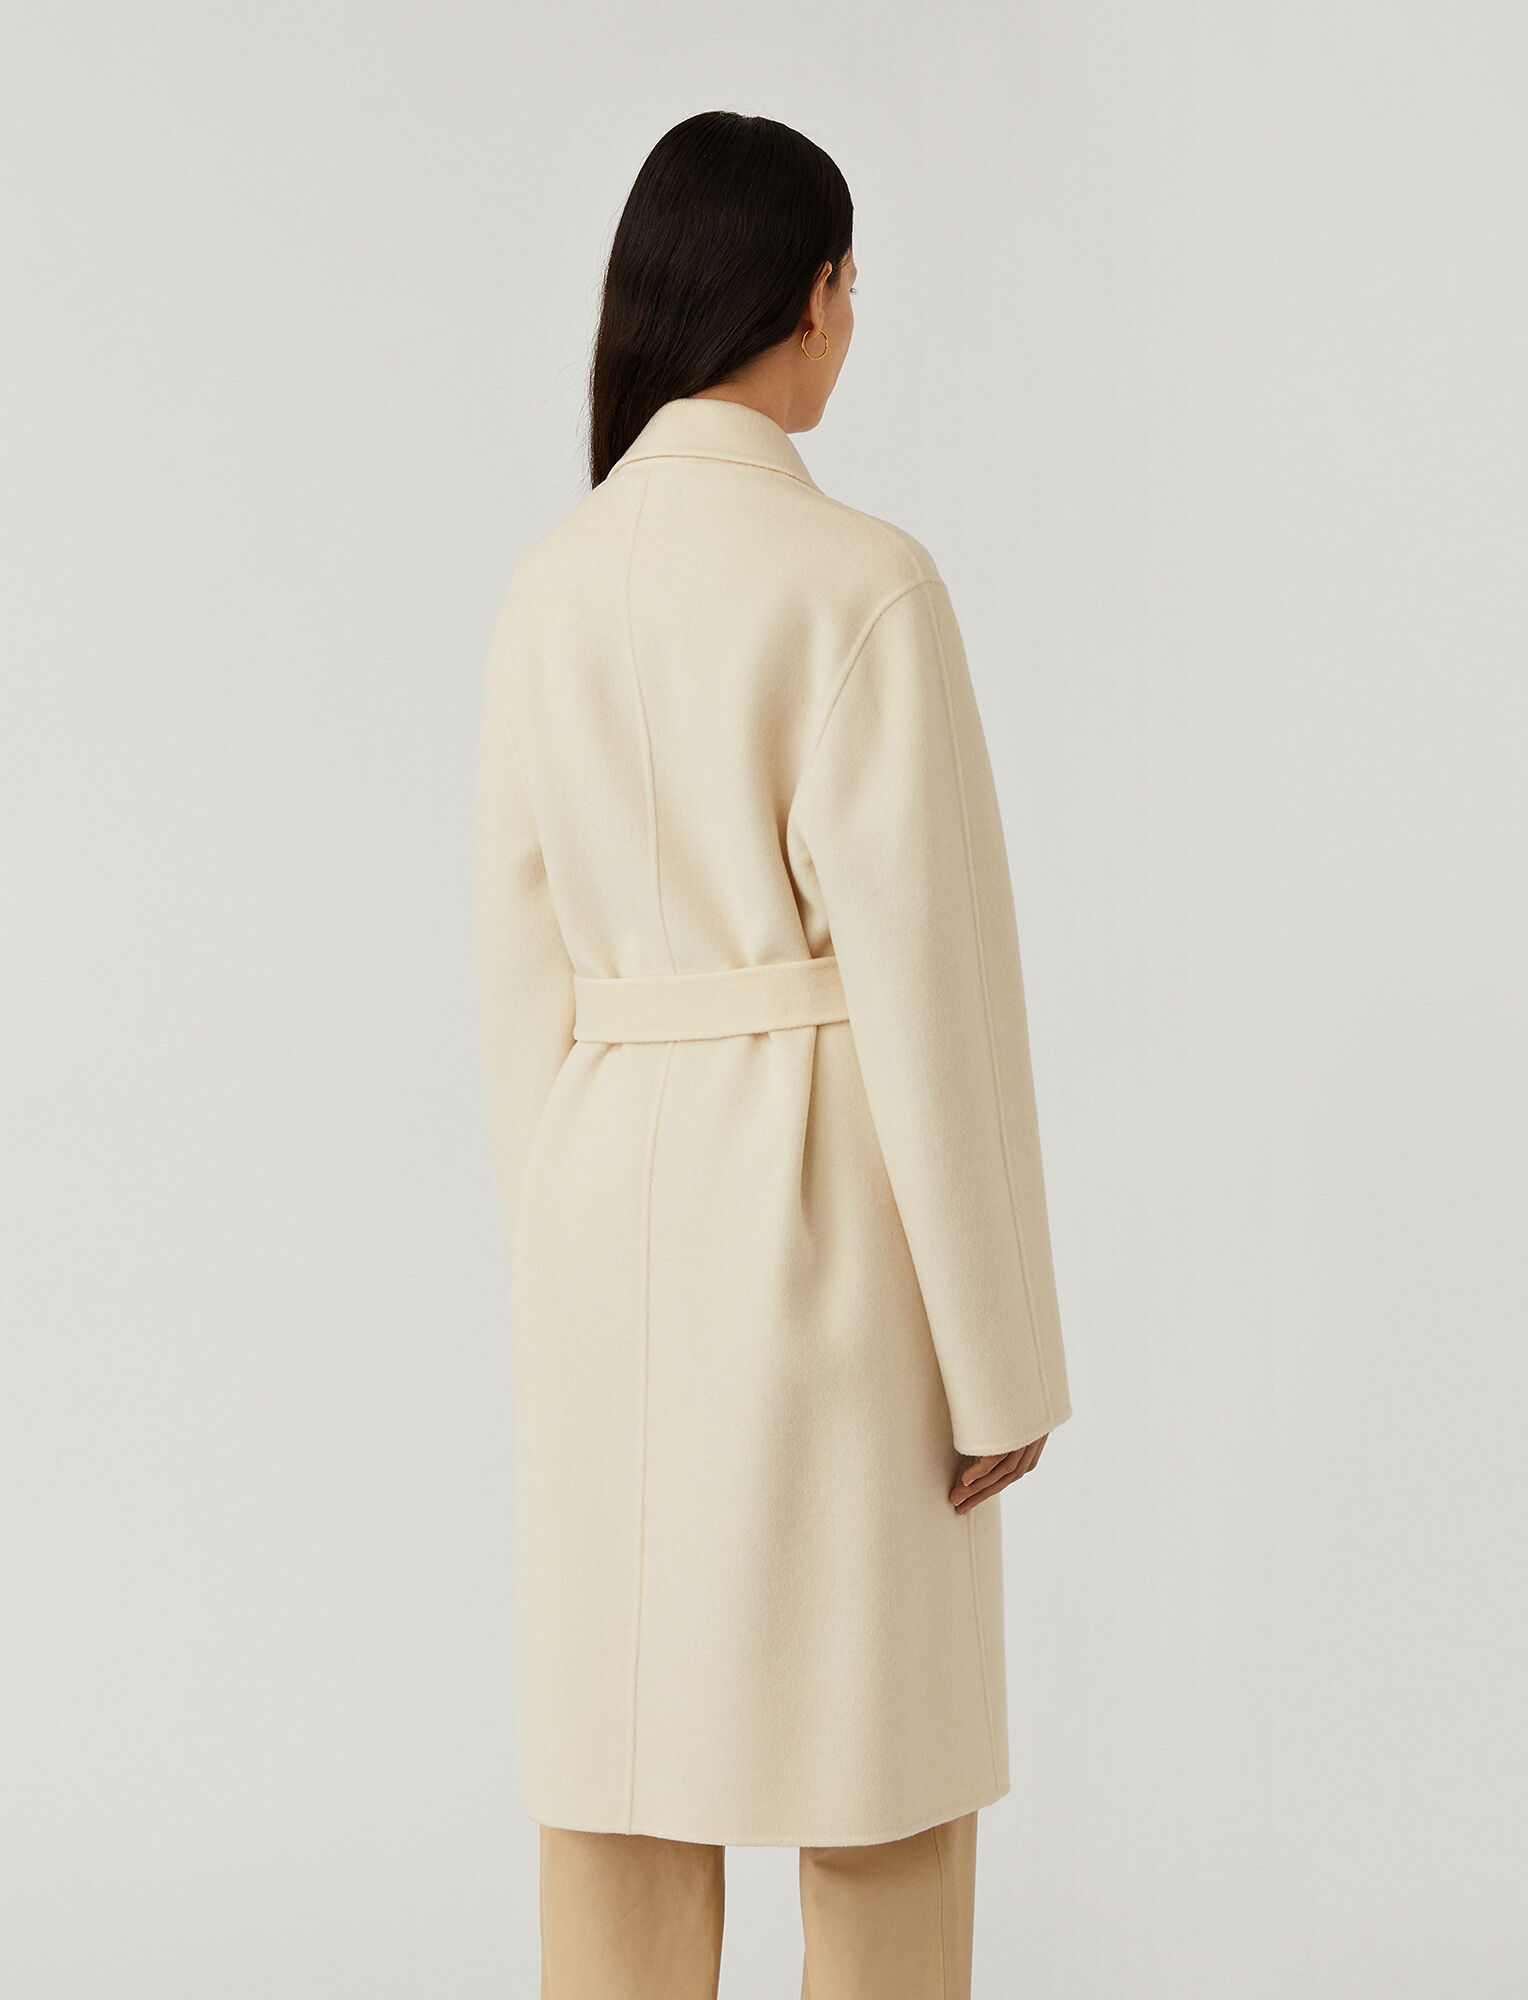 Joseph, Cenda Long Double Face Cashmere Coat, in Ivory